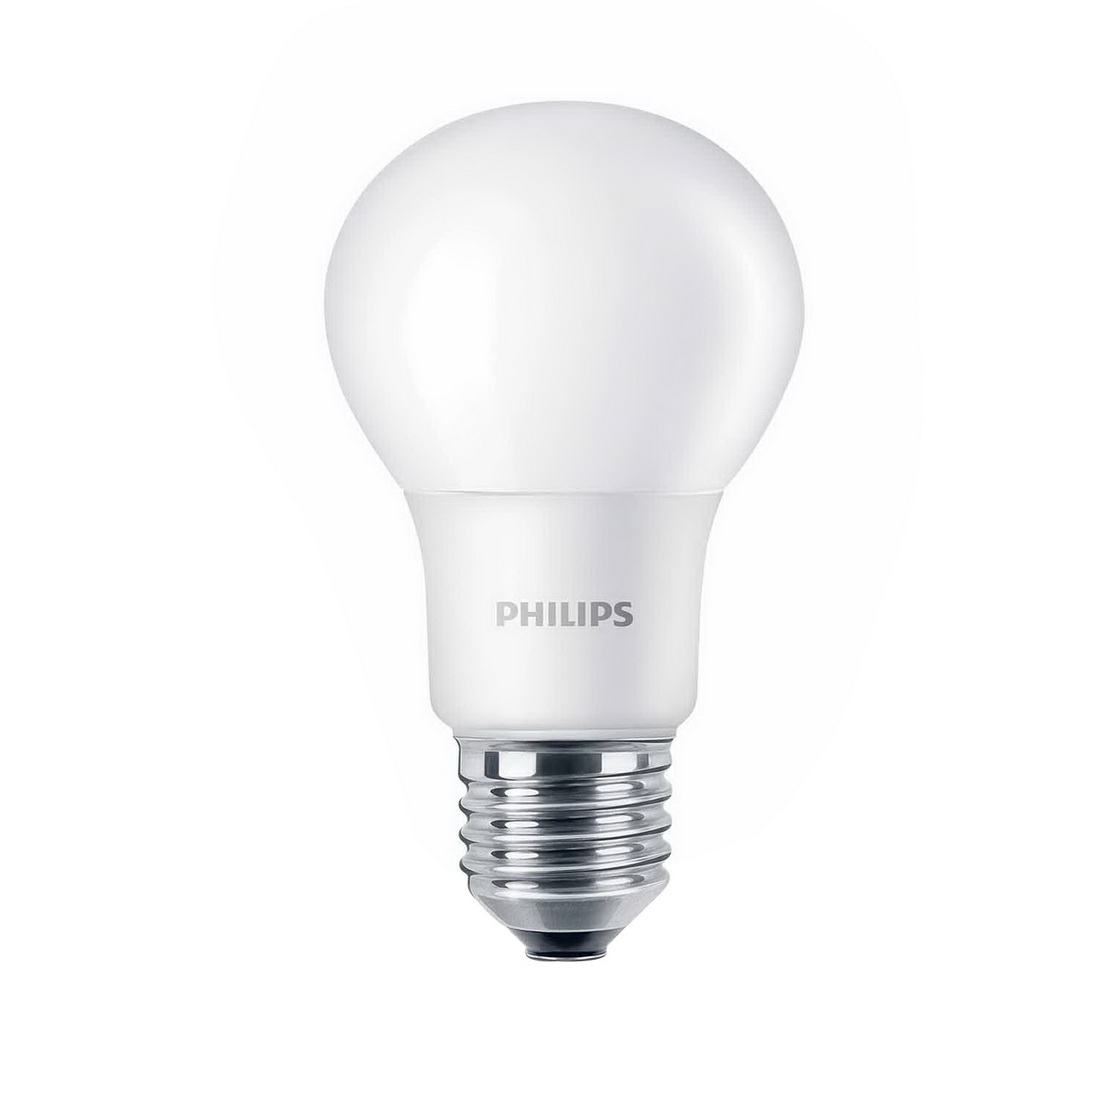 Ezi Living 12W 1360lm E27 6500K Generation 8 A60 Non-Dimmable LED Bulb Cool Daylight